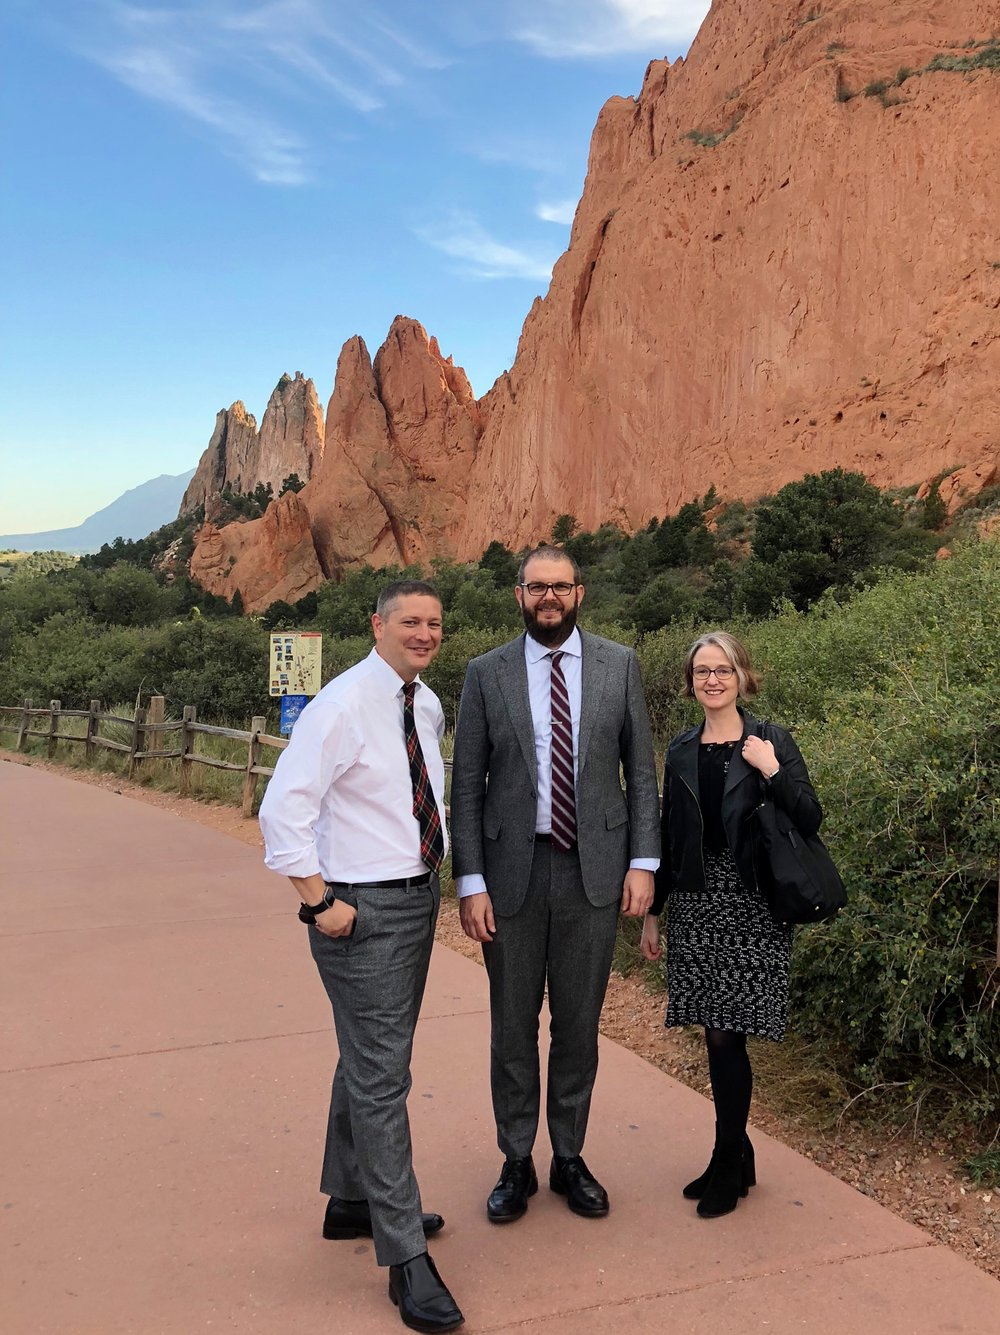 The PEN Trio in Colorado Springs at the Garden of the Gods.